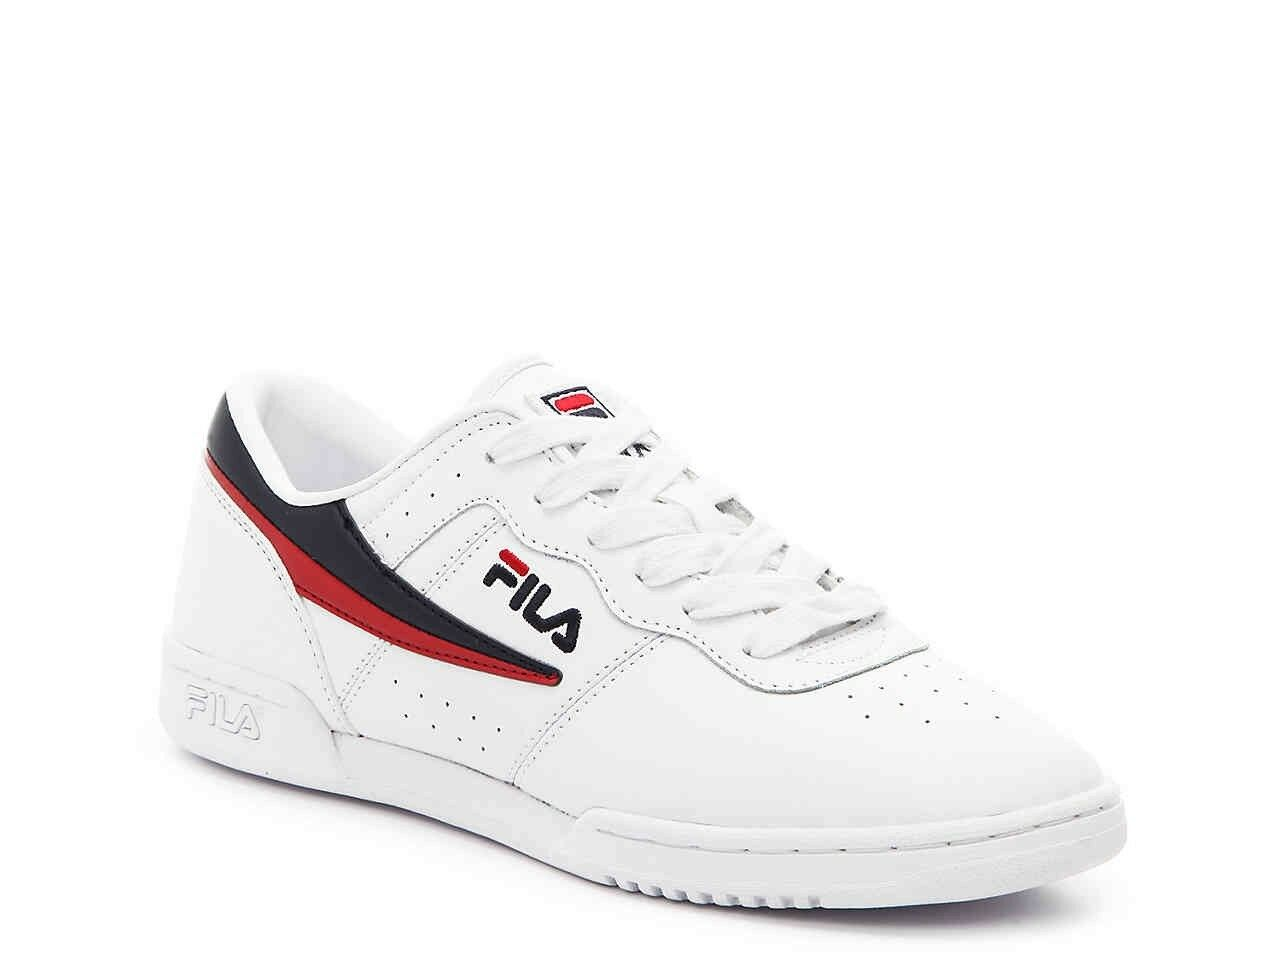 New FILA Womens Original Fitness Sneaker WHITE RED NAVY US W 6/3.5/36.5 Cheap and beautiful fashion